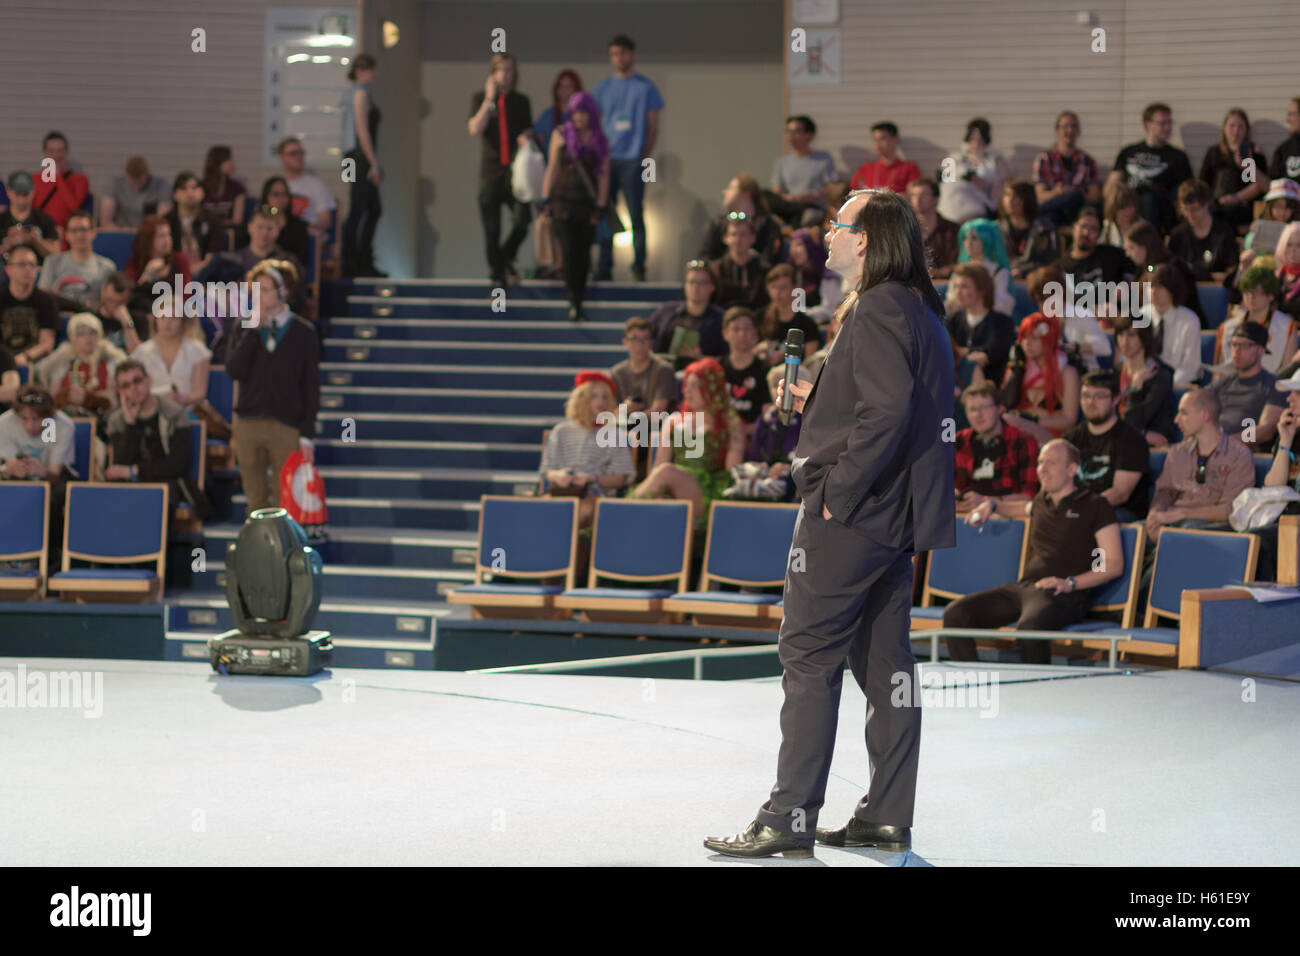 BRNO, CZECH REPUBLIC - APRIL 30, 2016:  Speaker during talks about love in Anime movies  at Animefest, anime  convention - Stock Image